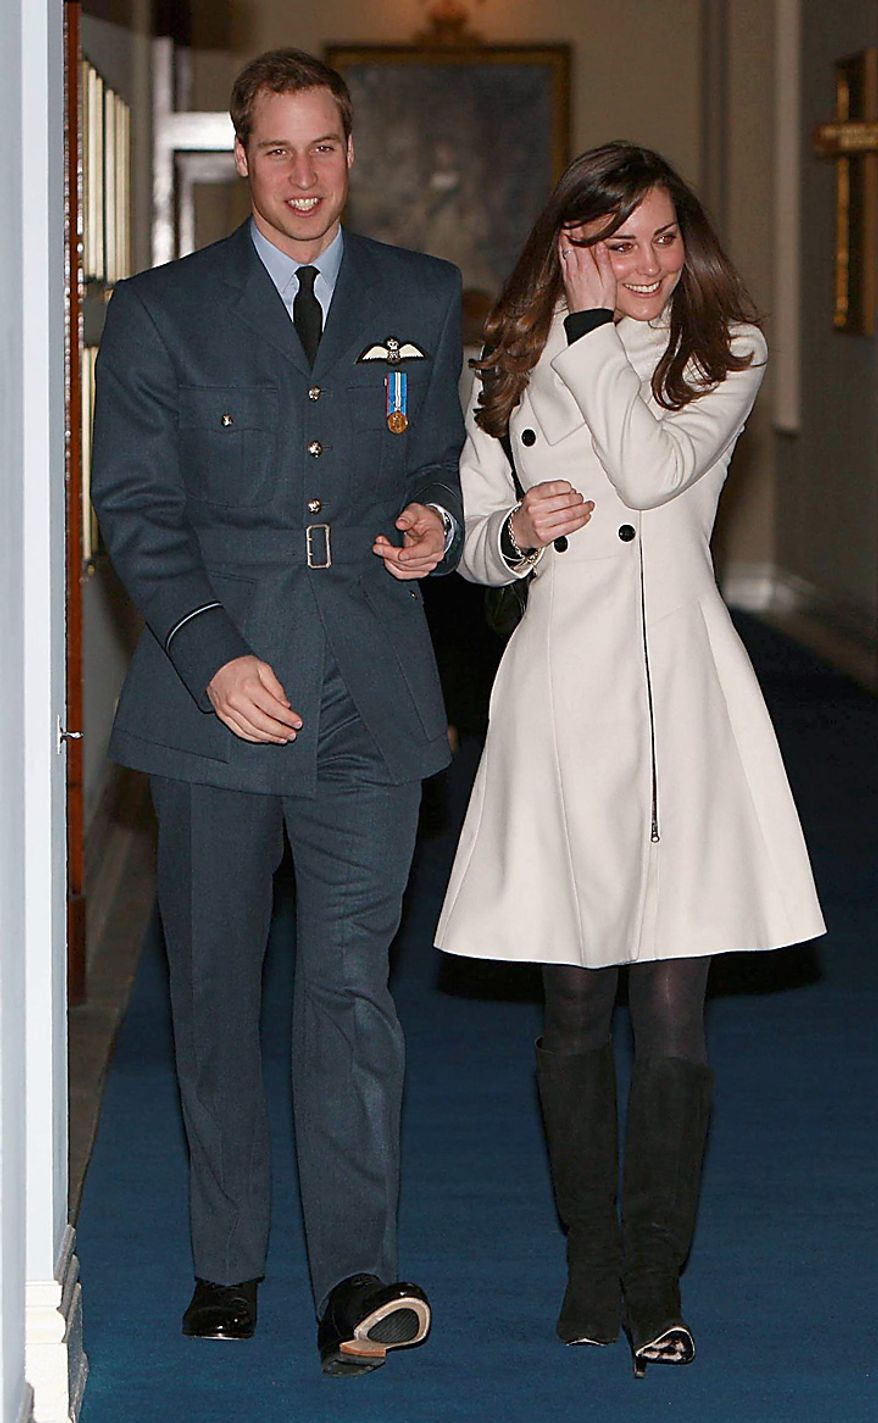 In this Friday April 11, 2008. file photo, Britain's Prince William and his girlfriend Kate Middleton walk together at RAF Cranwell, England, after William received his RAF wings from his father the Prince of Wales. According to an announcement by Clarence House in London, Tuesday Nov. 16, 2010,  the couple are to wed in 2011, Further details about the wedding day will be announced in due course.(AP Photo/Michael Dunlea, pool, file)